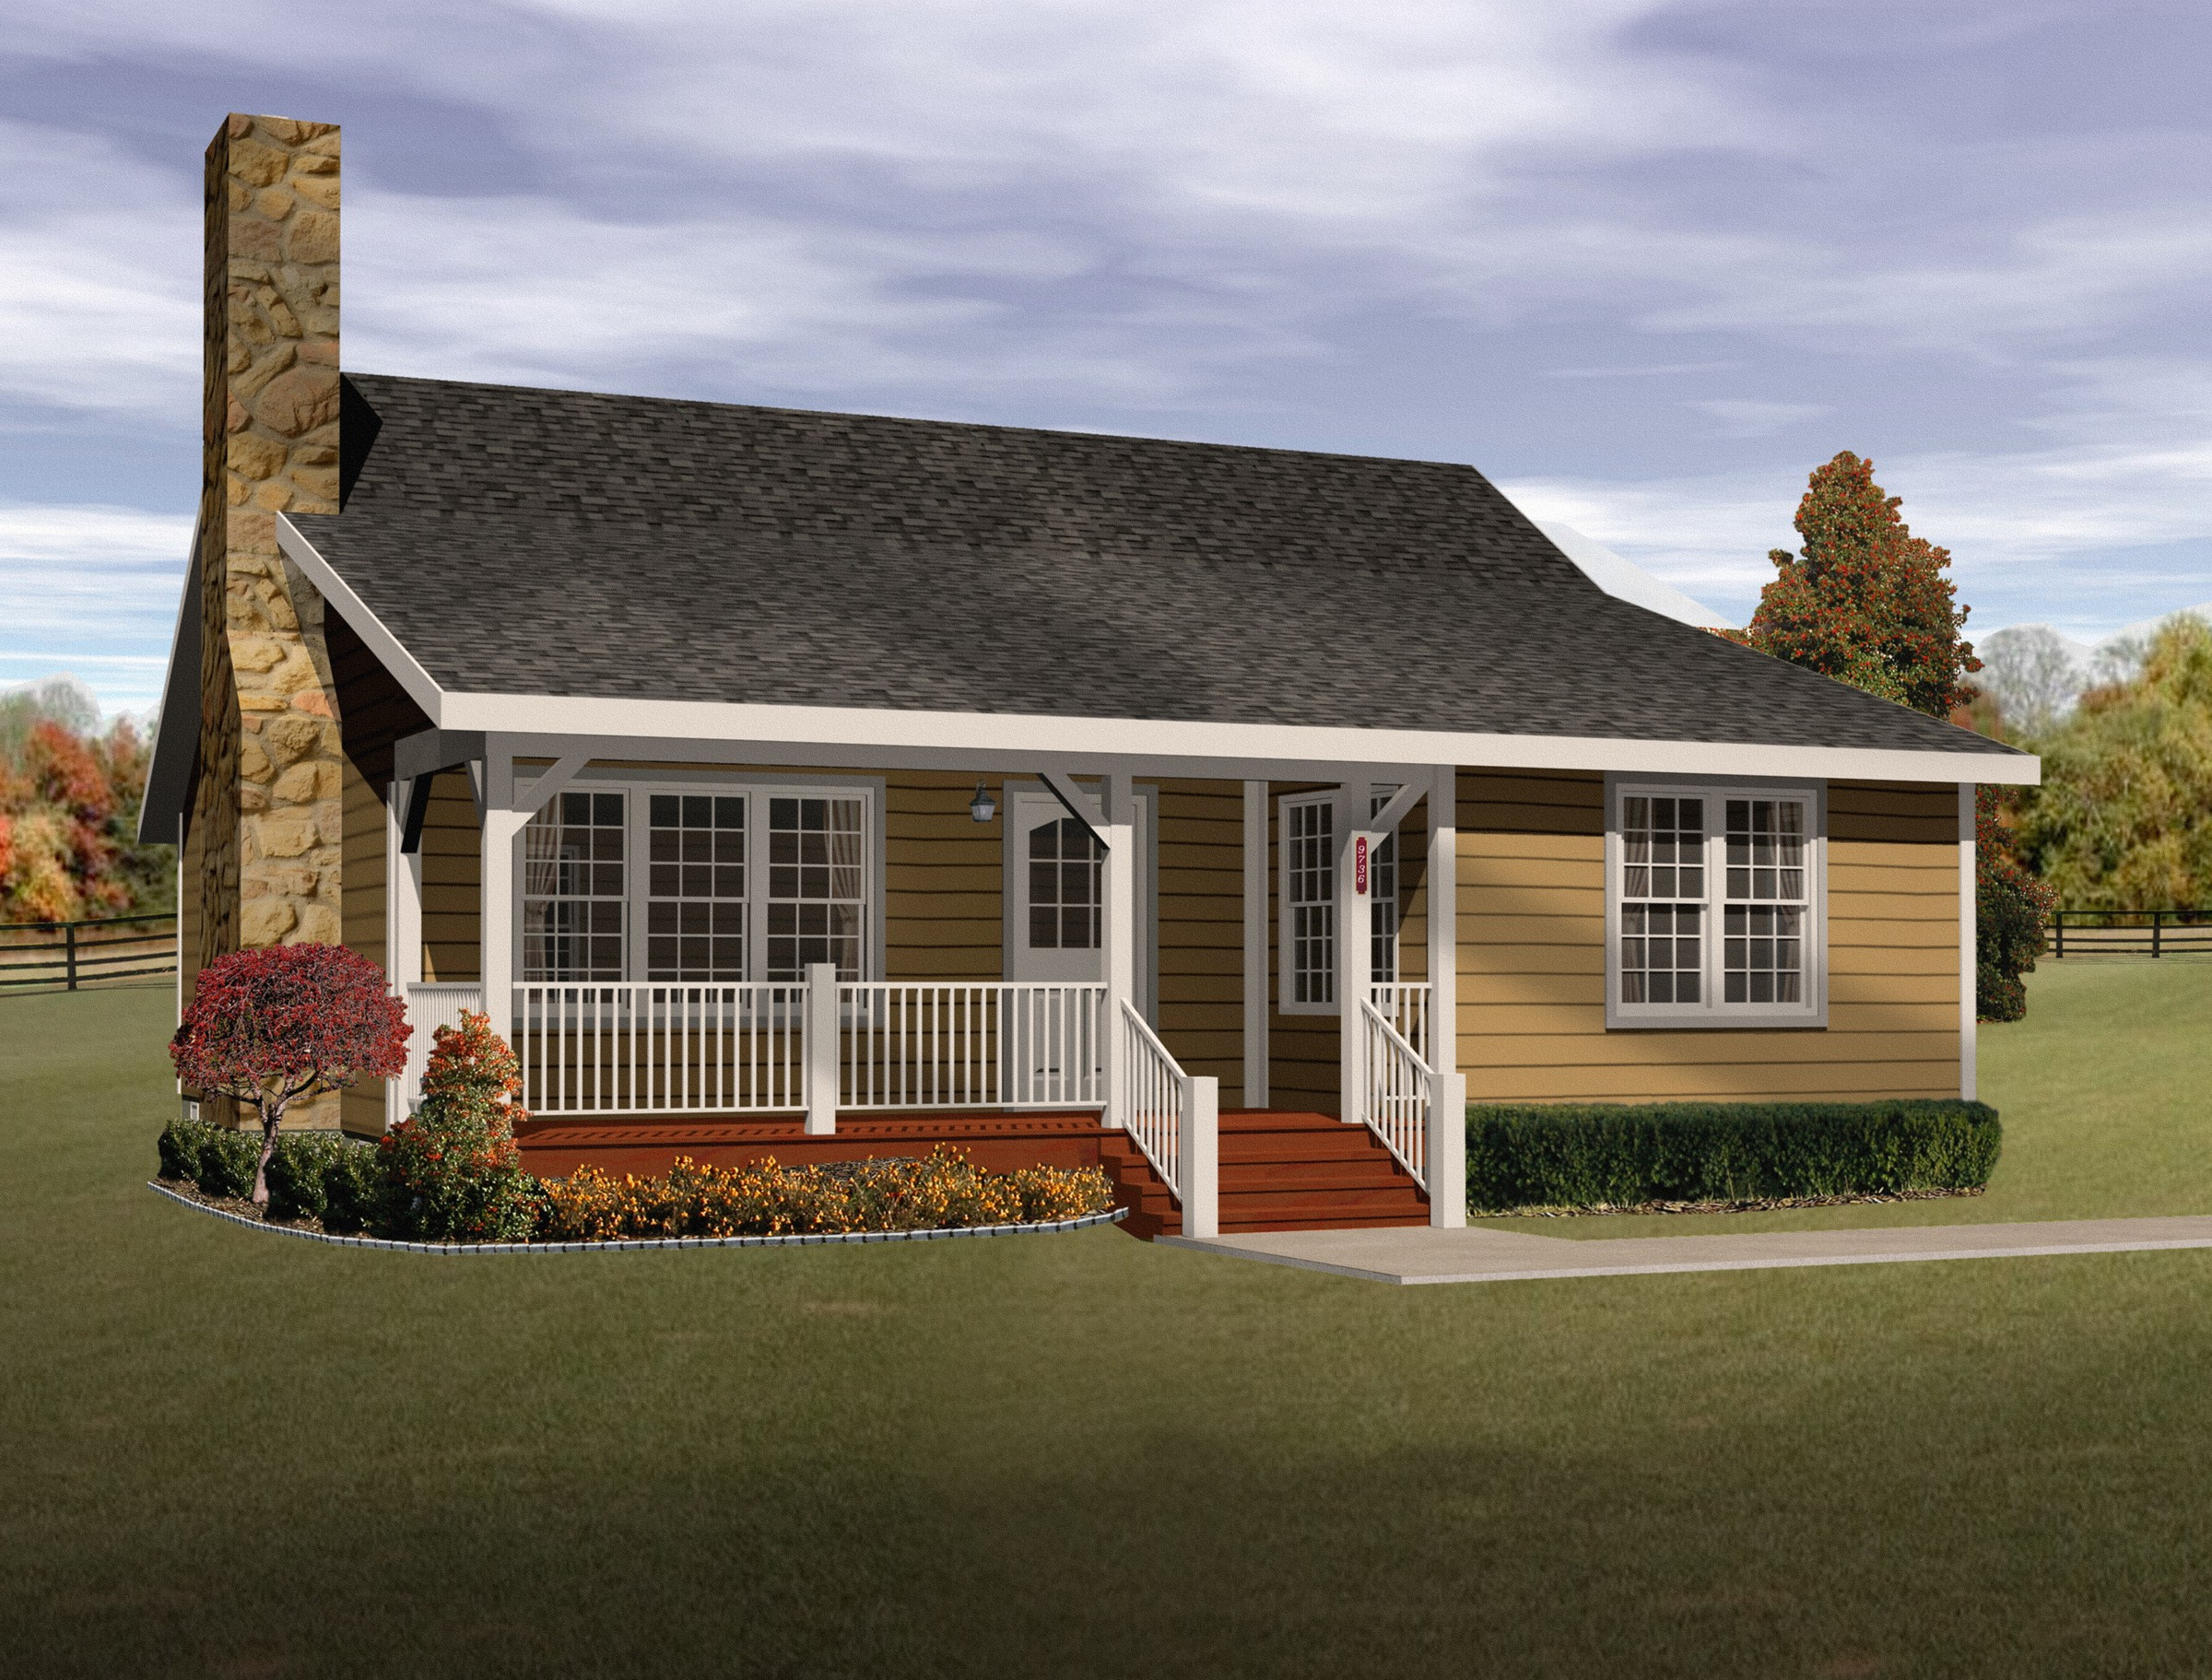 cozy cottage home plan 2256sl 1st floor master suite On cozy cottage plans